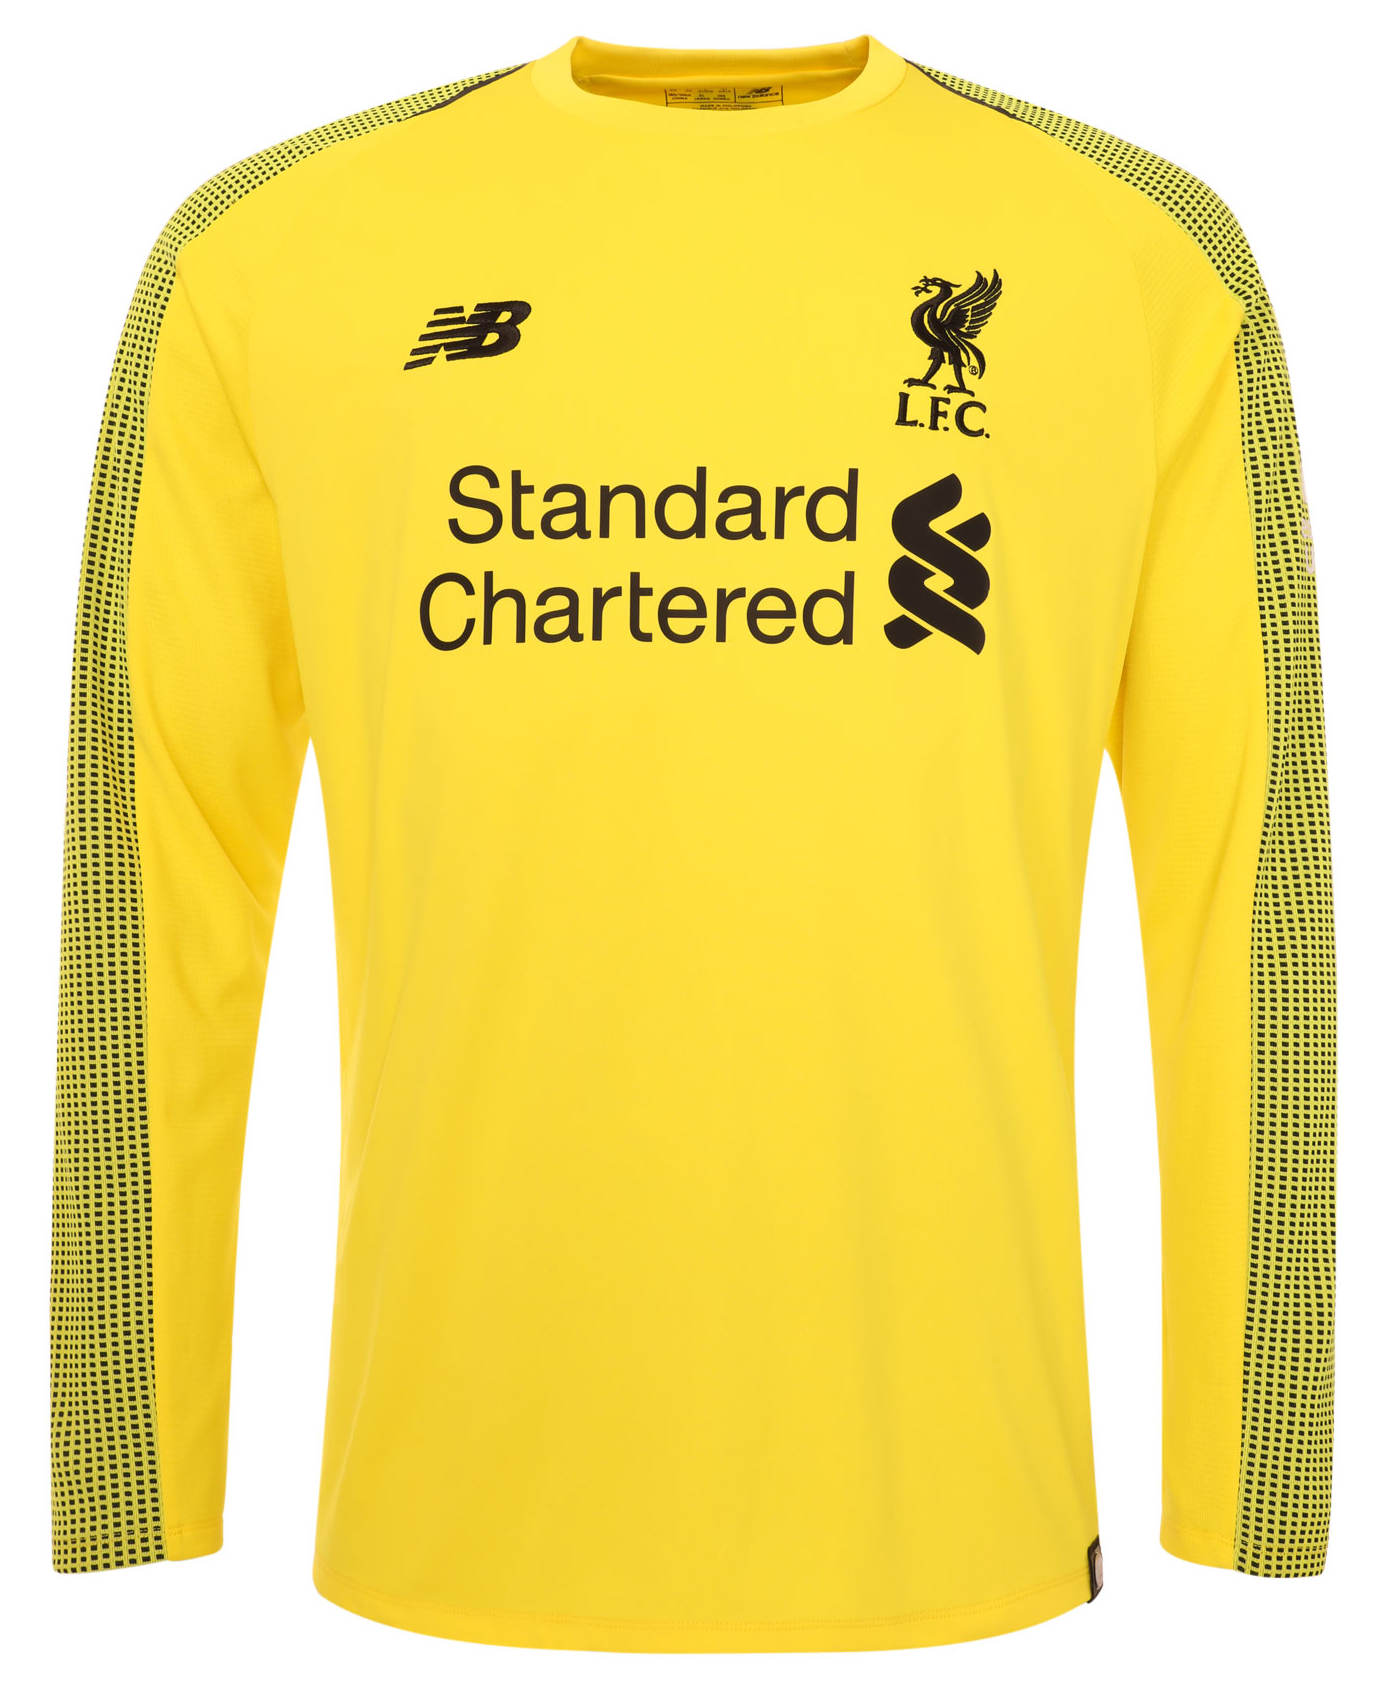 764fba465 2018-19 LFC home kit revealed - pre-order now - Liverpool FC